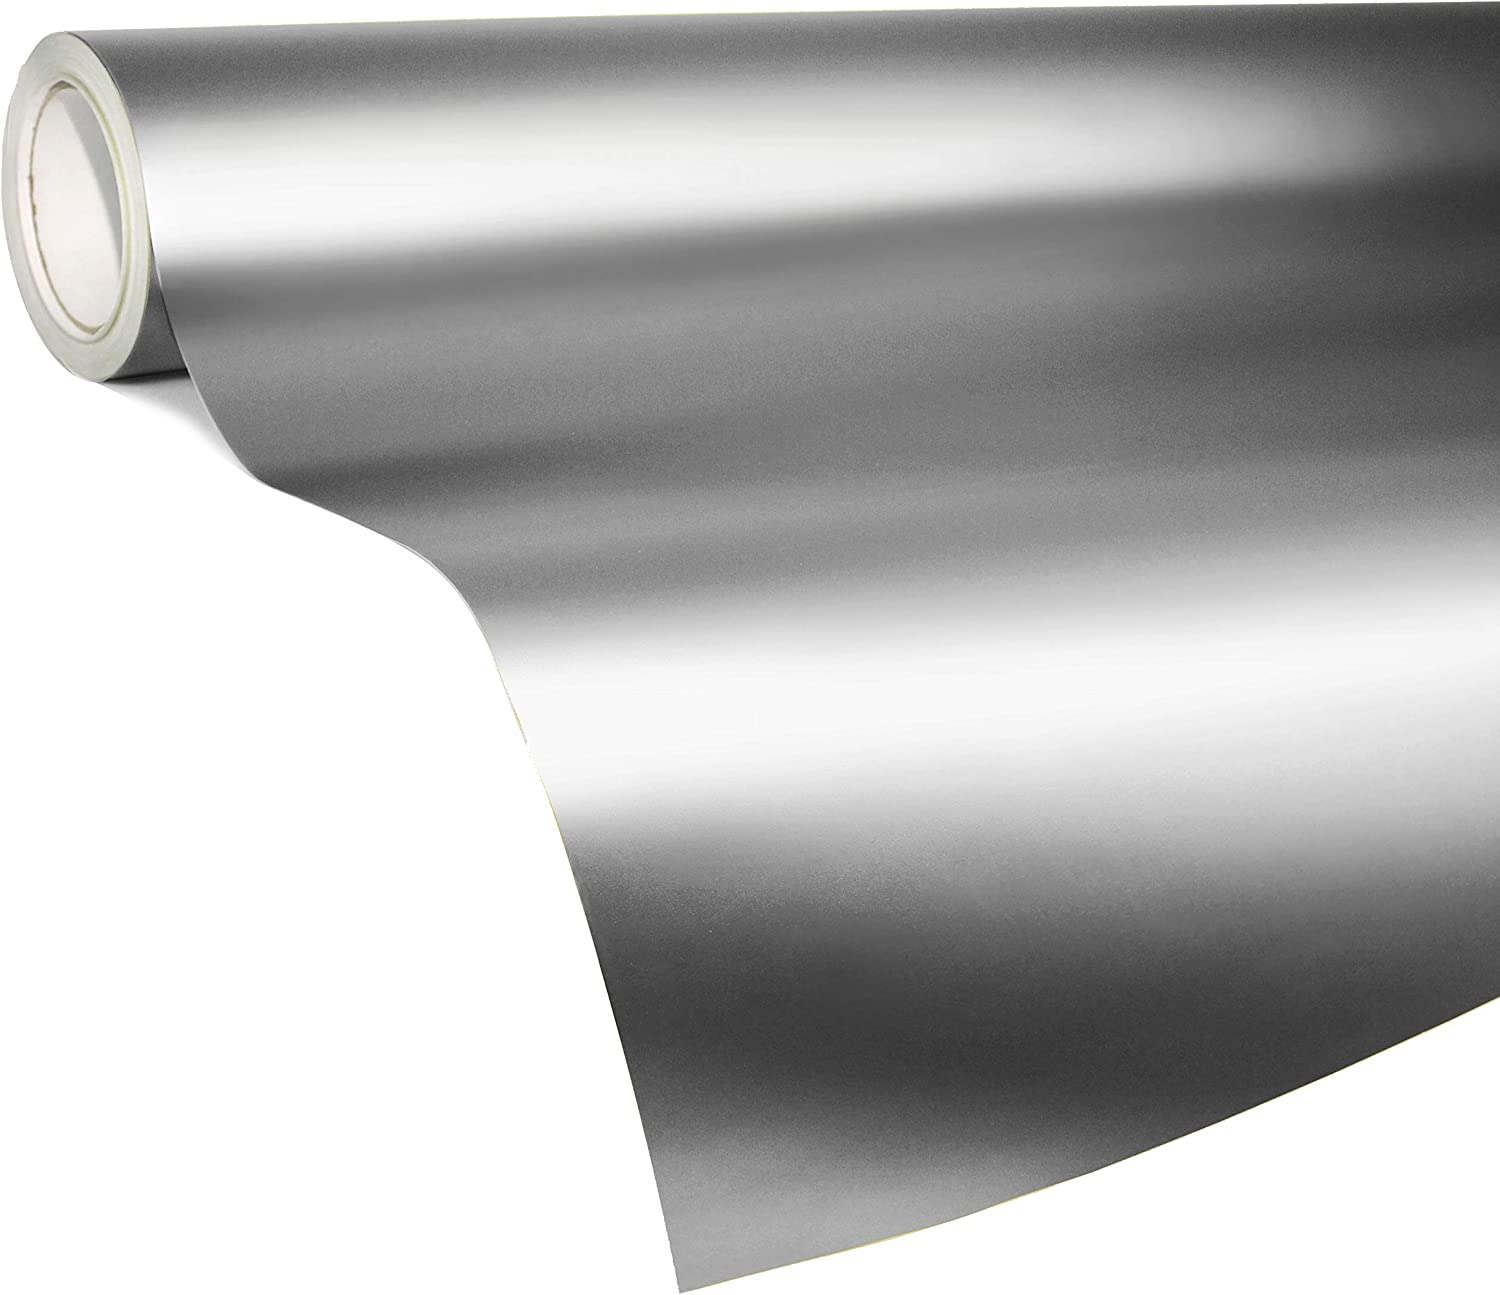 VViViD Architectural Stainless Steel Satin Finish Chrome Color Film 36 x 60